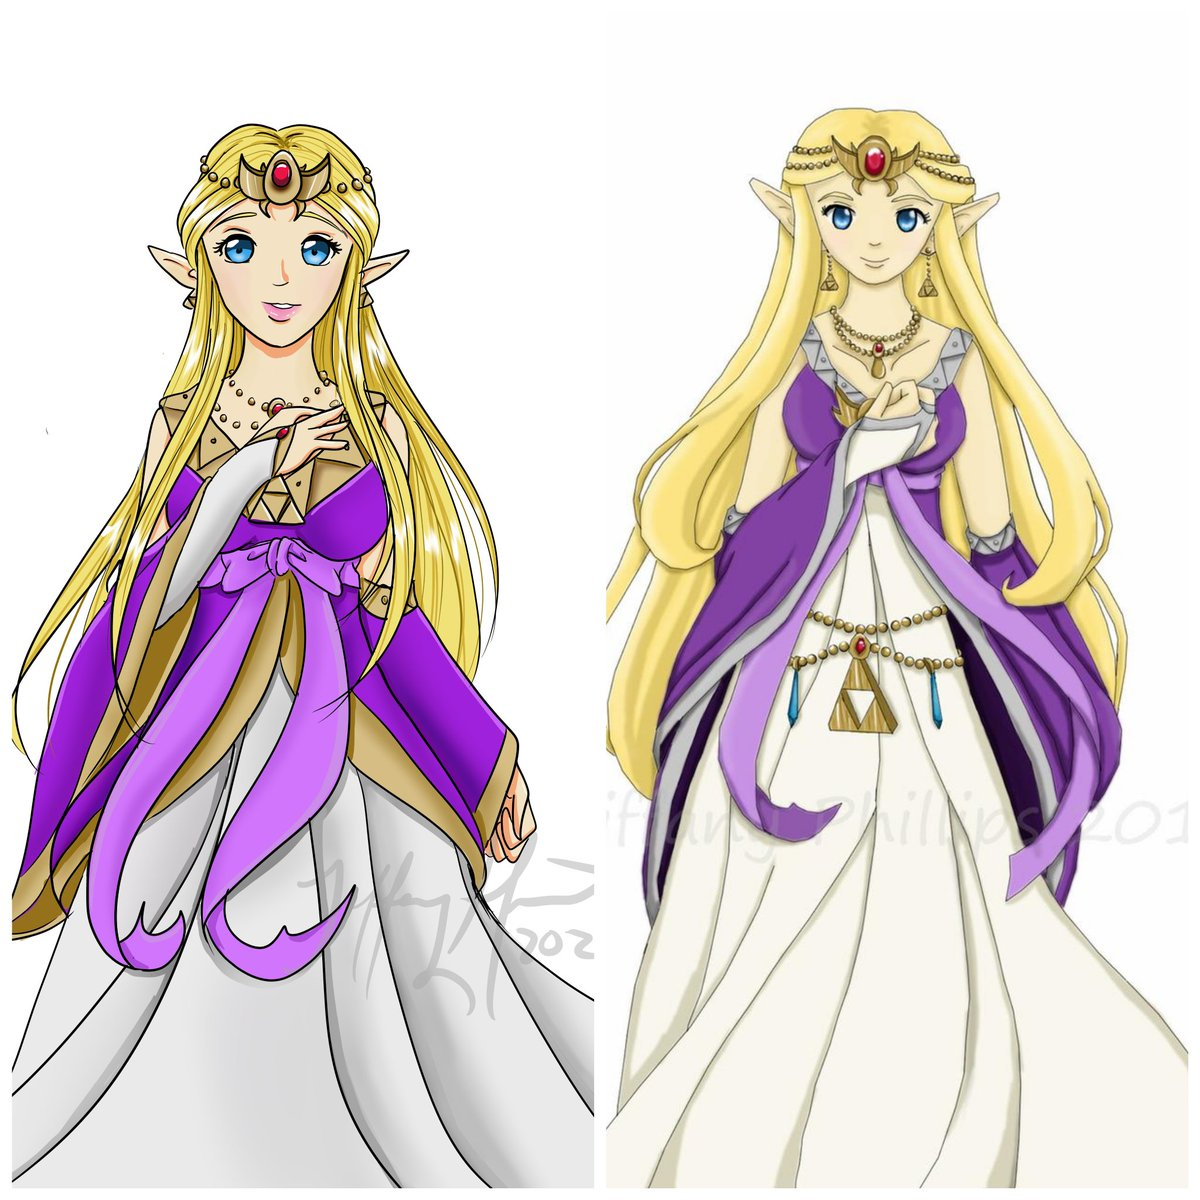 The finished product! I changed some designs and color choices for personal preference. Overall I am happy with the outcome! #redraw #10yearchallenge #PrincessZelda #LegendOfZelda #fanart #originaldesignpic.twitter.com/KXizNKBcXd